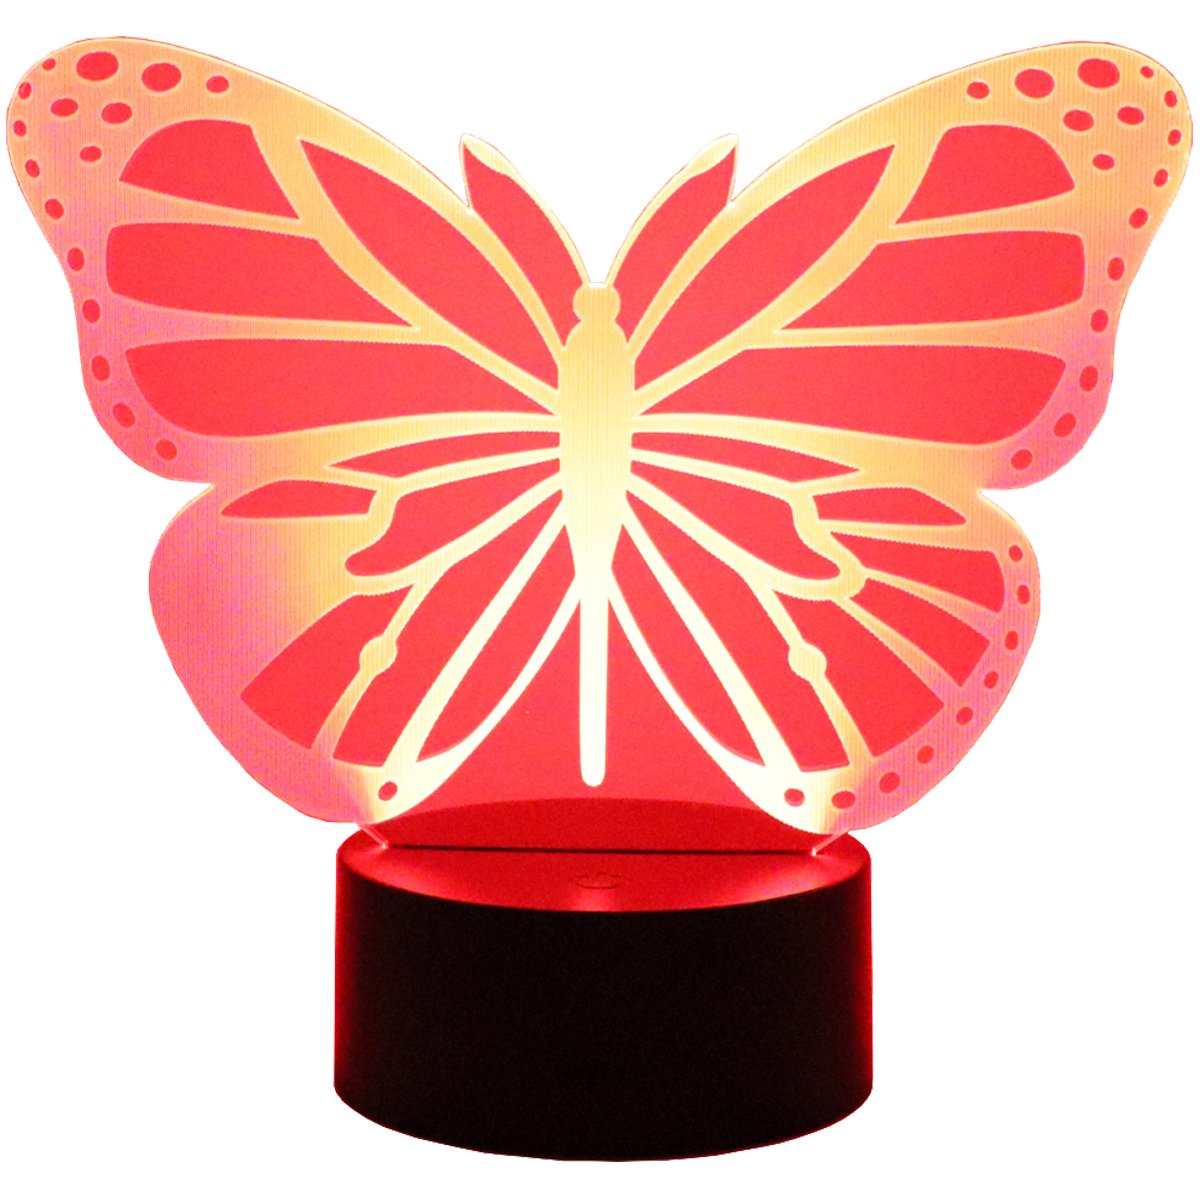 Hguangs 3D Lamp Butterfly Shape Night Lamp 3D Optical Illusion Night light Desk Table Light 7 Colors Changing Touch Control Gift for Christmas Birthday Valentine's Day Kids Children Girl and Boy